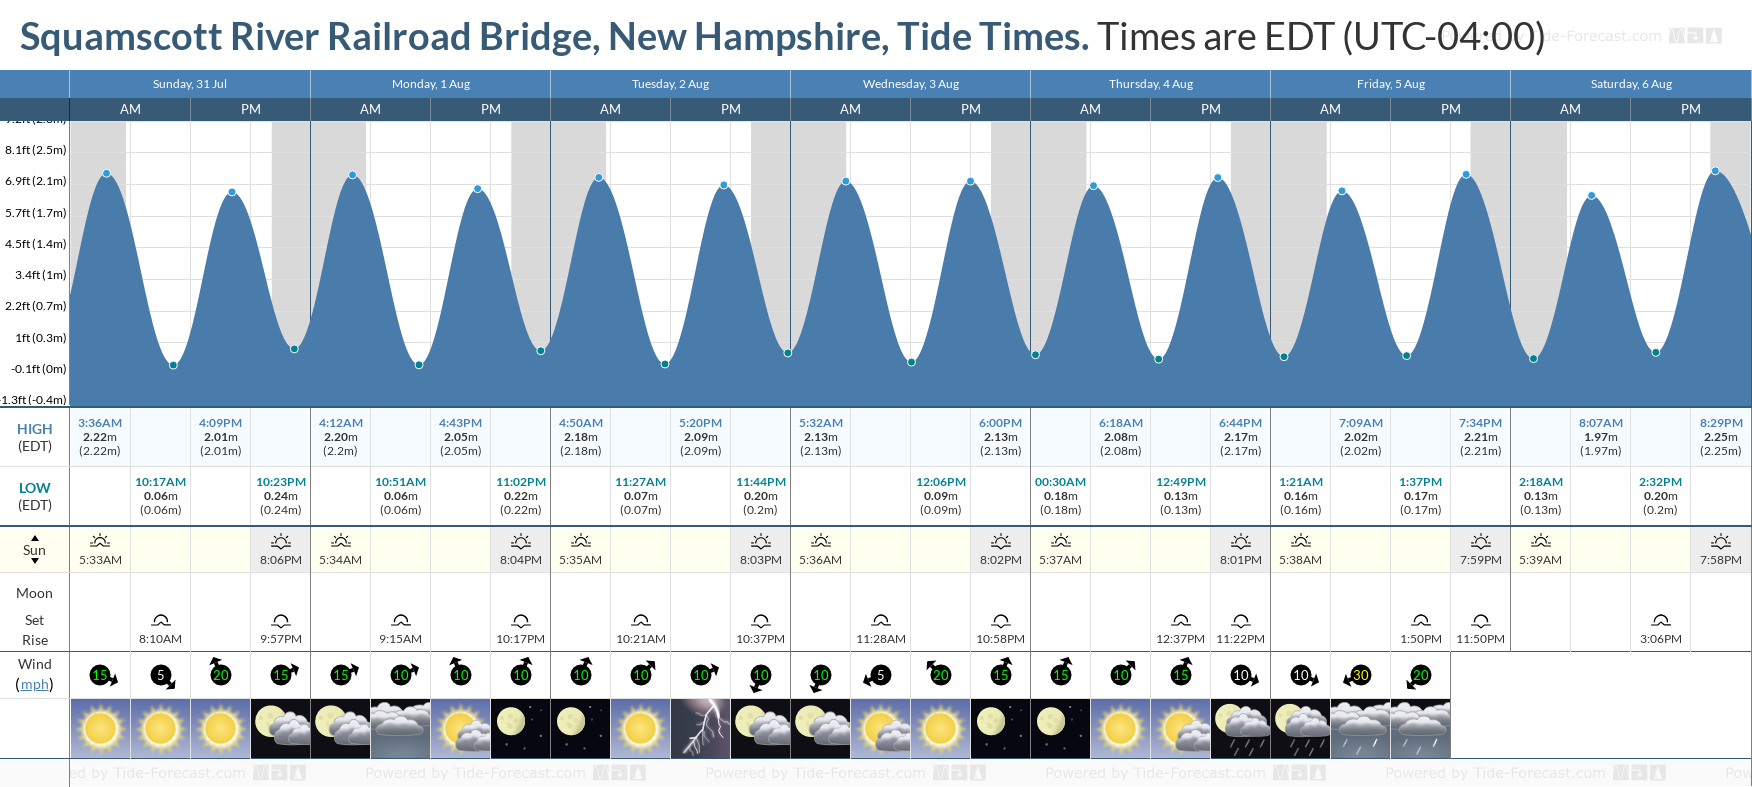 Squamscott River Railroad Bridge, New Hampshire Tide Chart including high and low tide tide times for the next 7 days